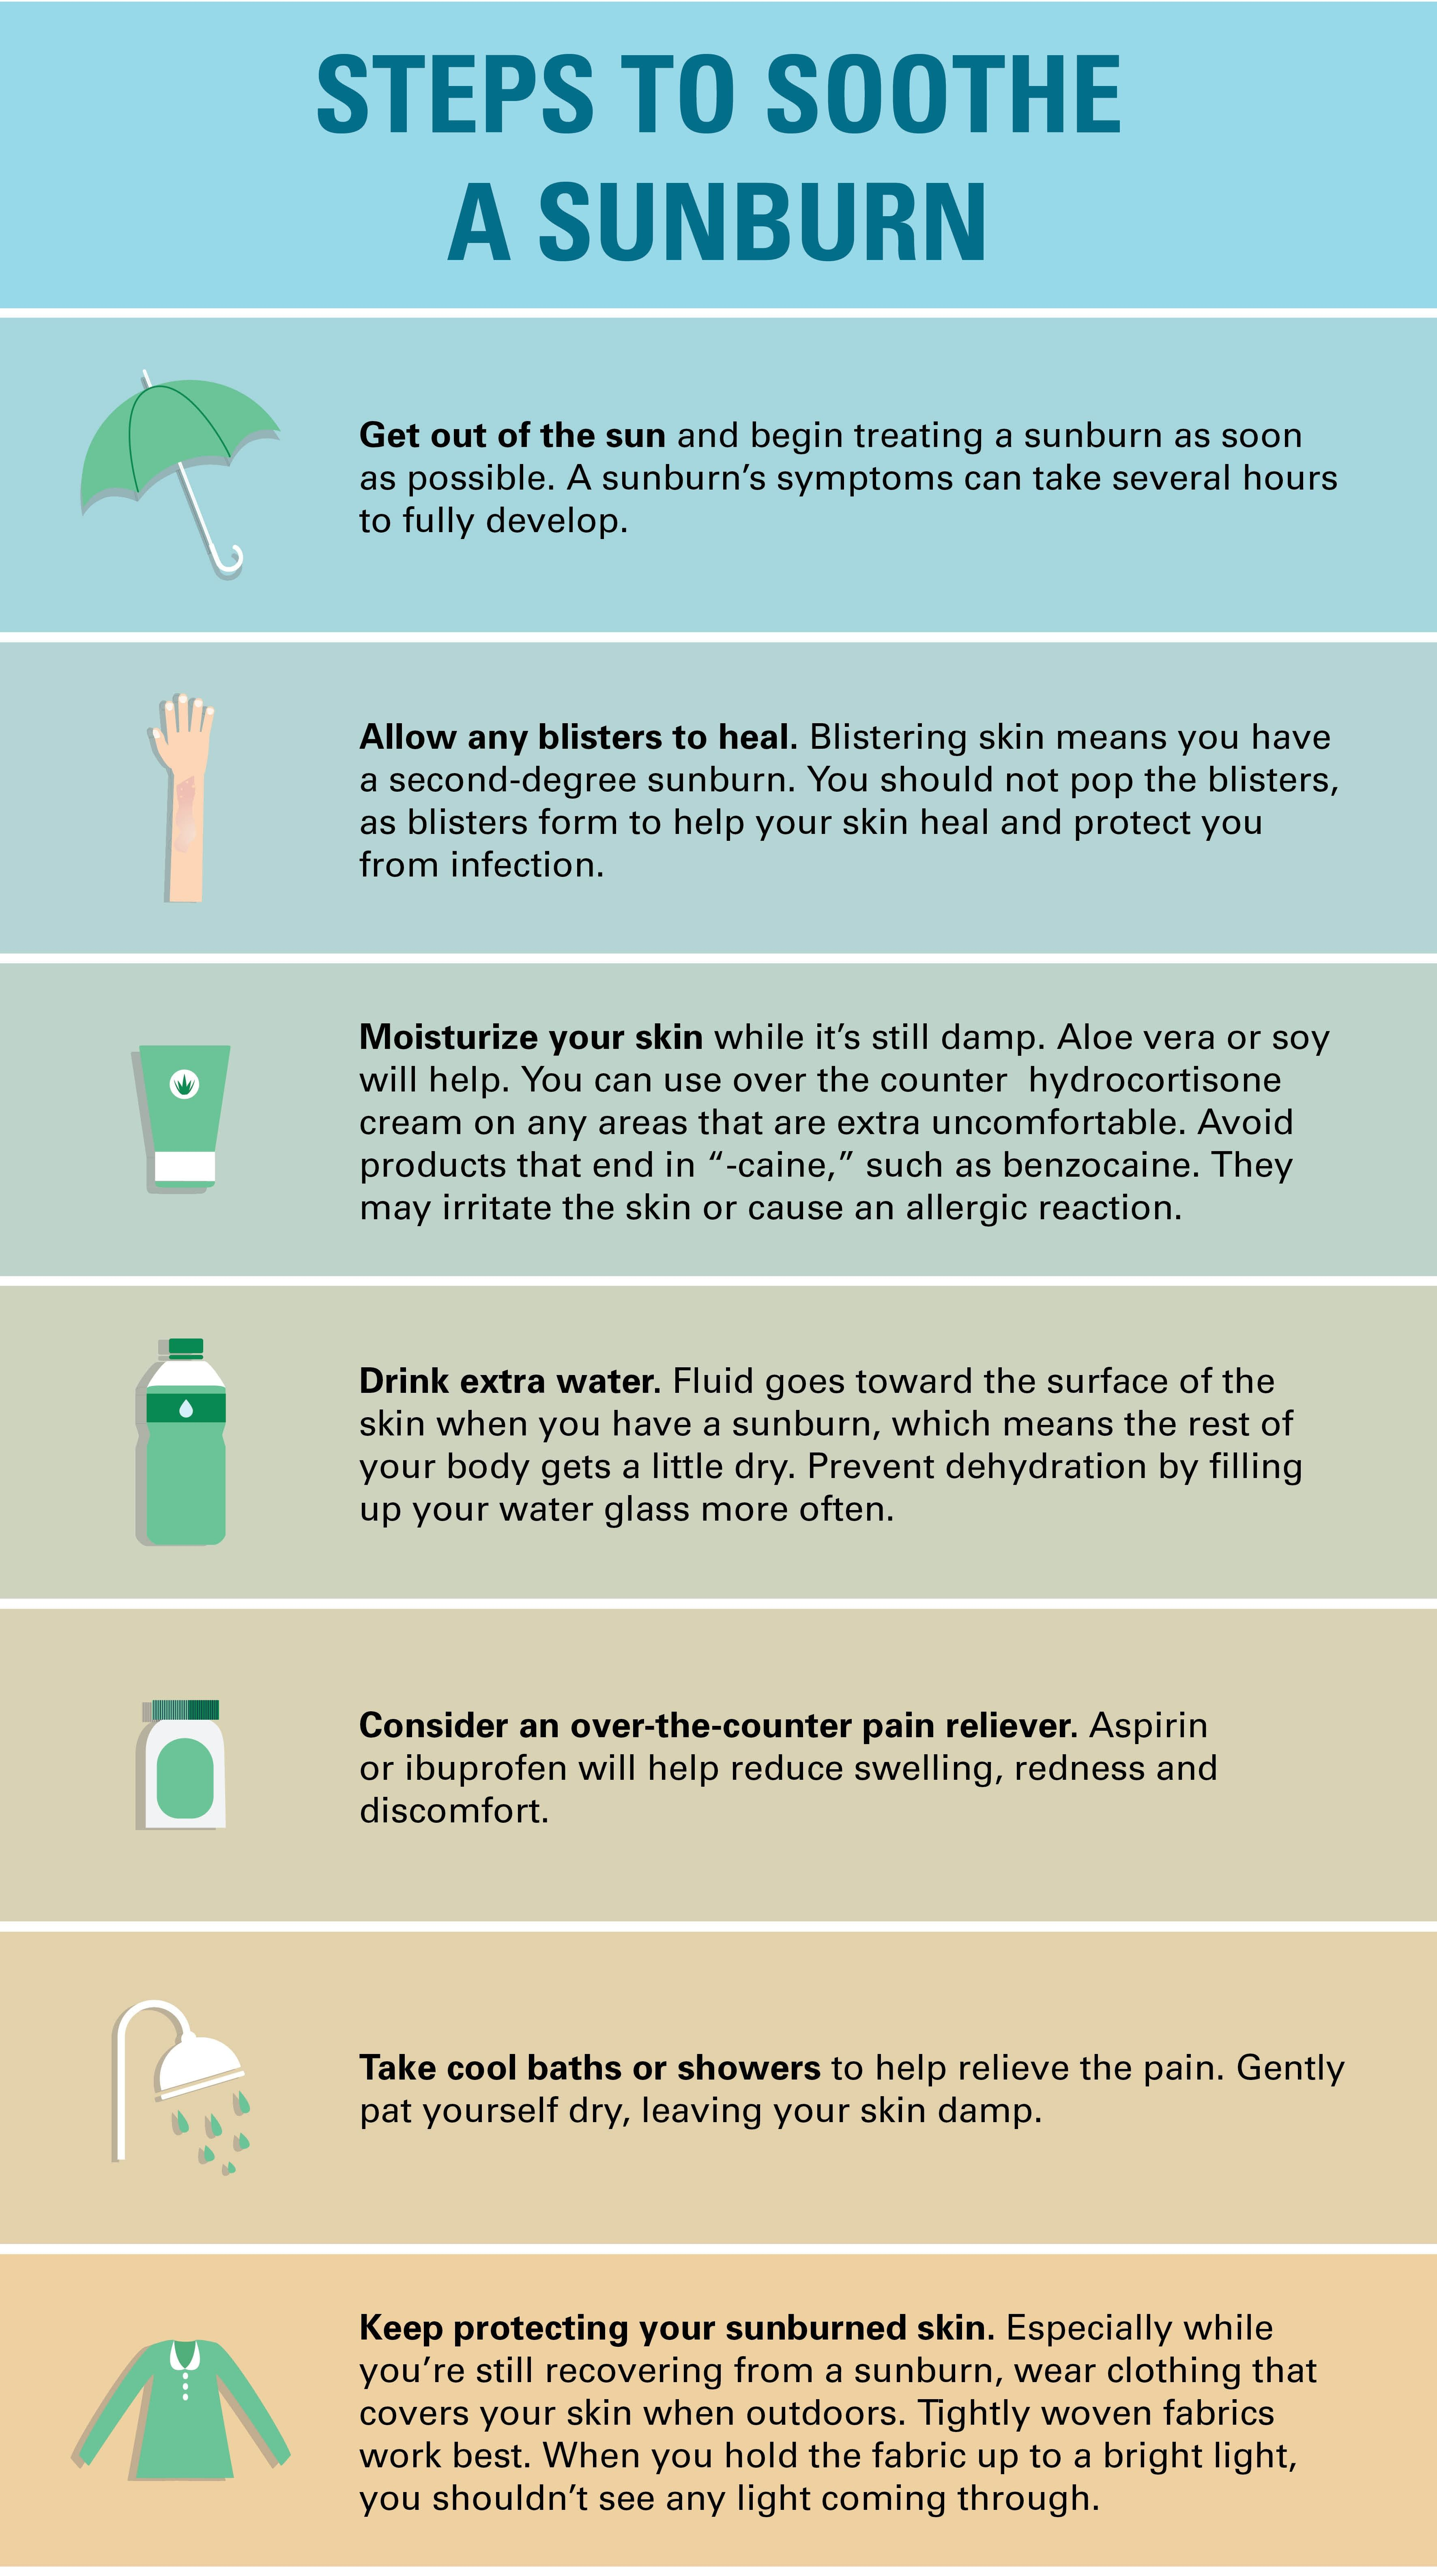 How To Treat Sunburn recommendations